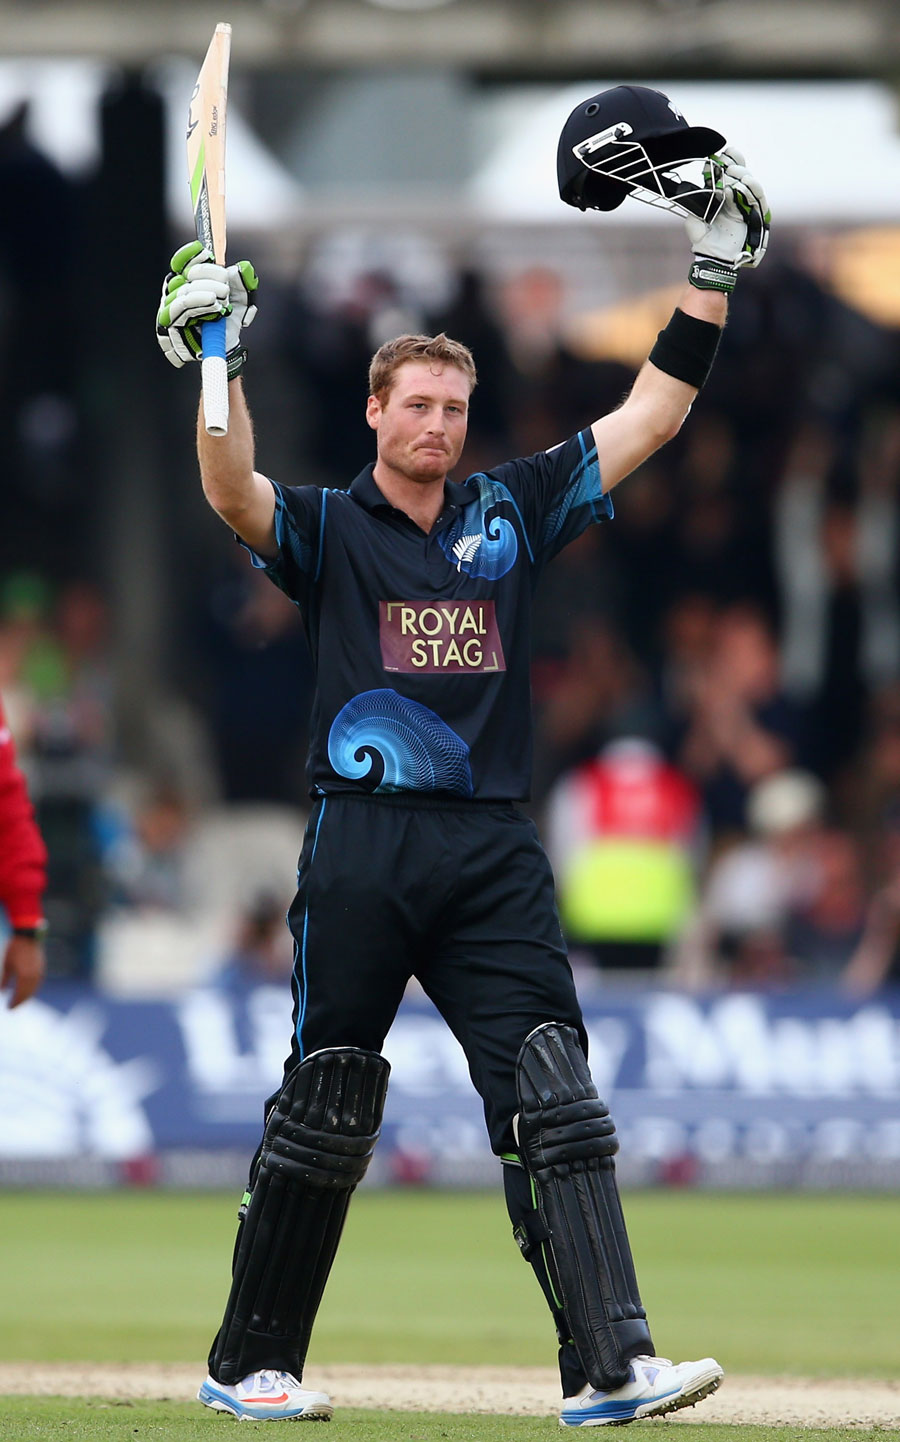 Martin Guptill completed his century and chased down the target on the same delivery (Photo: Getty Images)